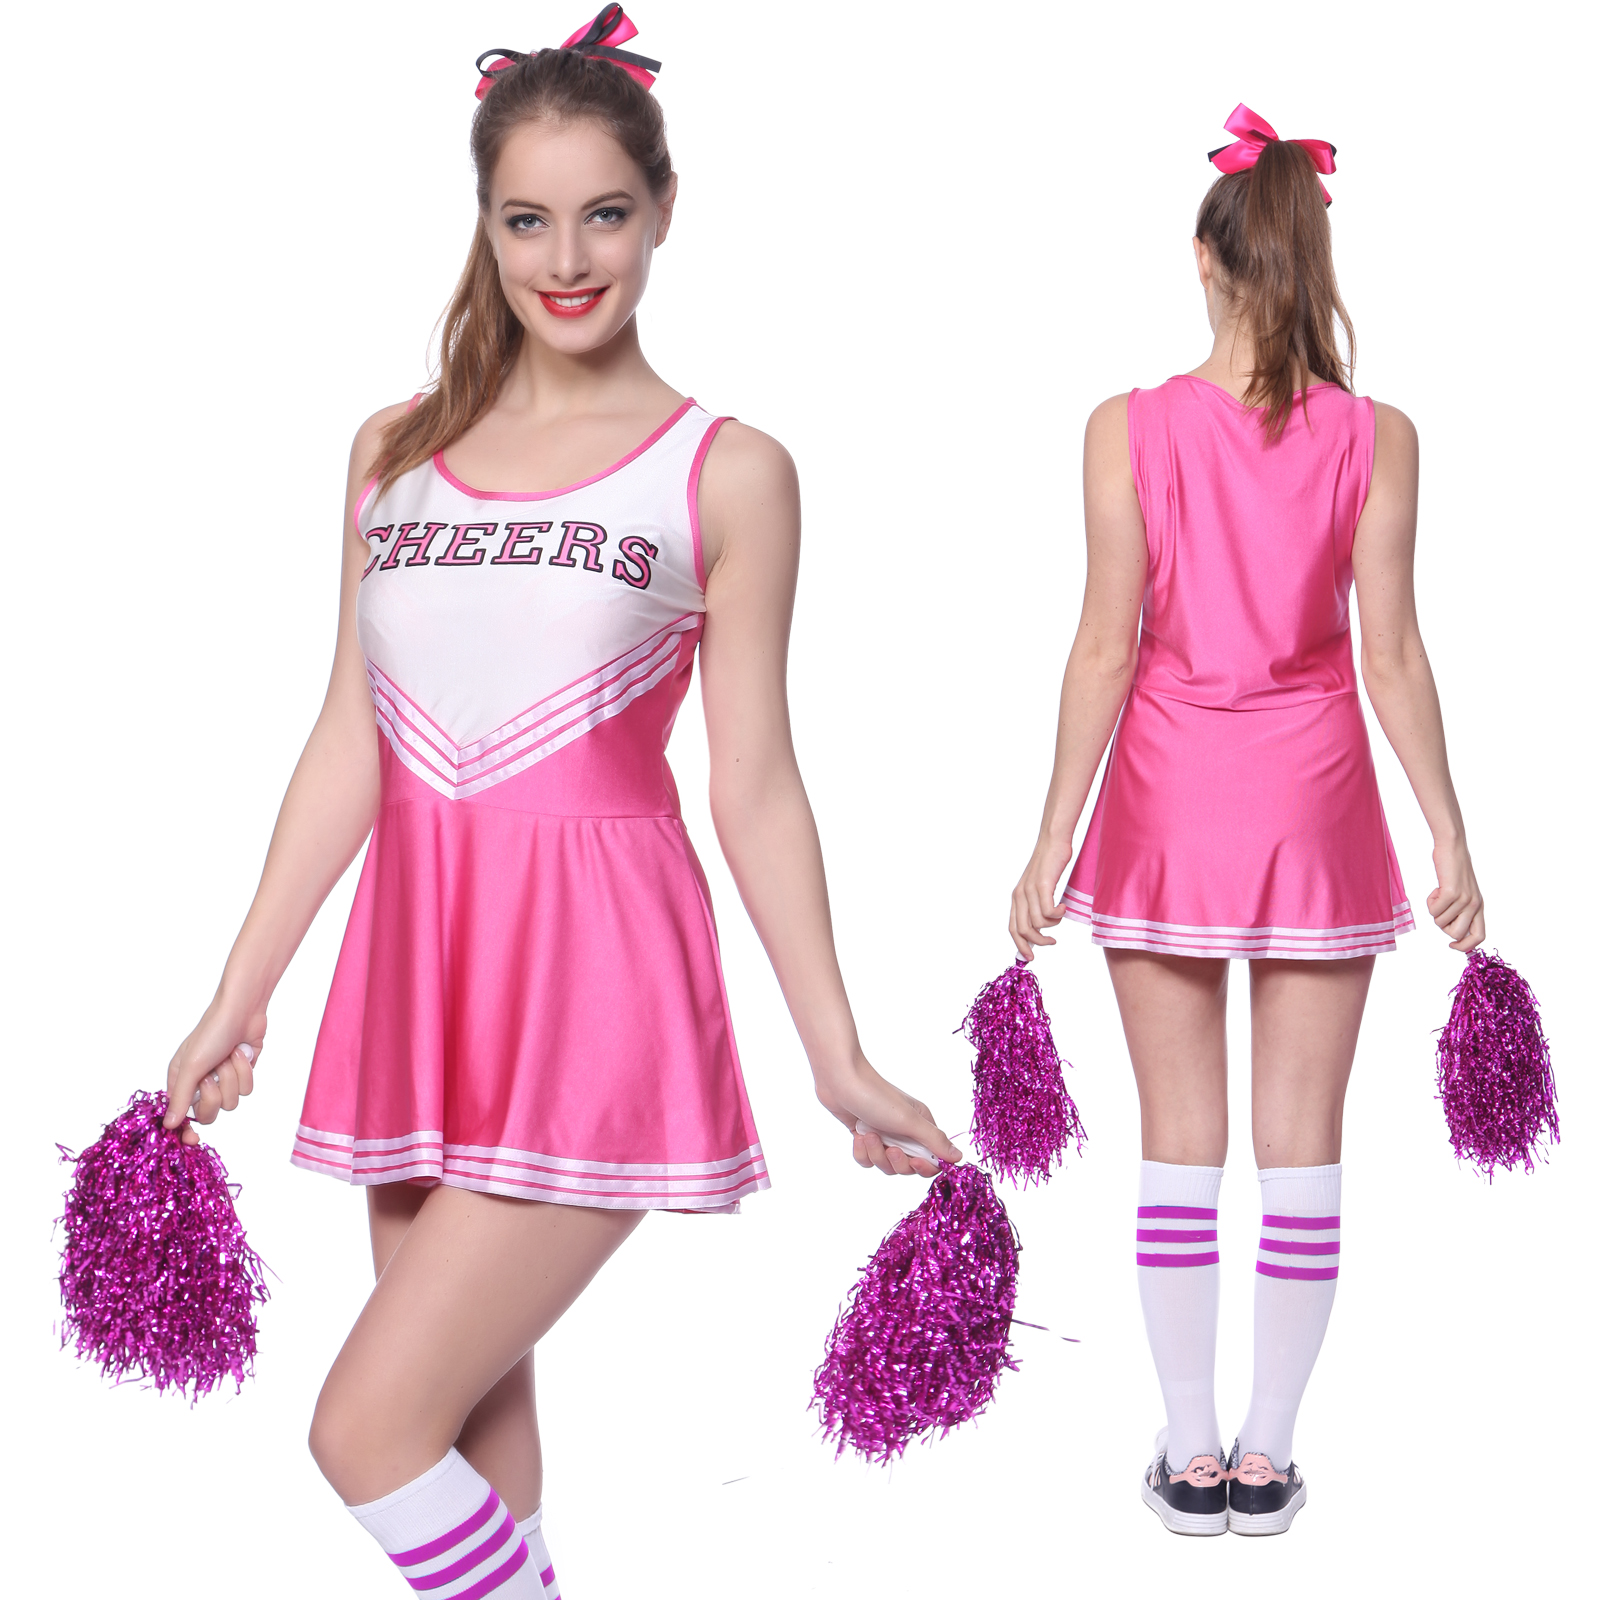 Picture 13 of 13  sc 1 st  eBay & Girls School Cheerleader Costume Dress Cheer Uniform Party Outfit W ...